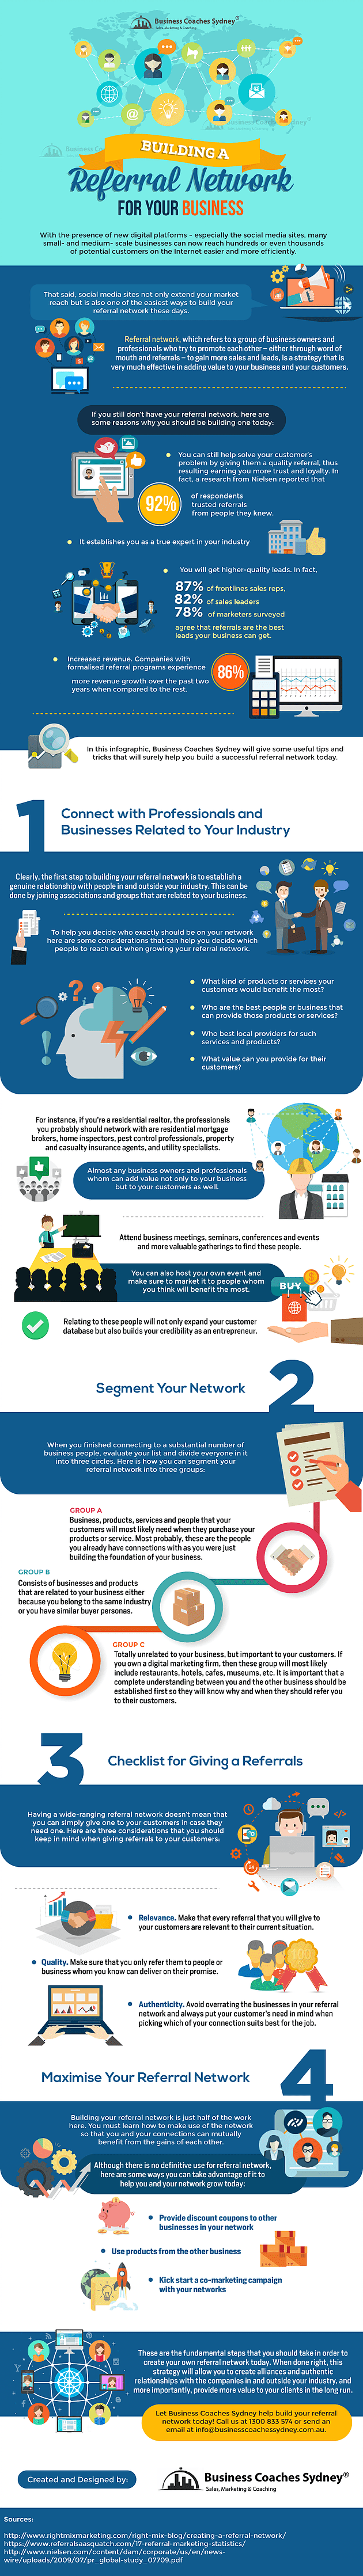 Building A Referral Network For Your Business – Infographic